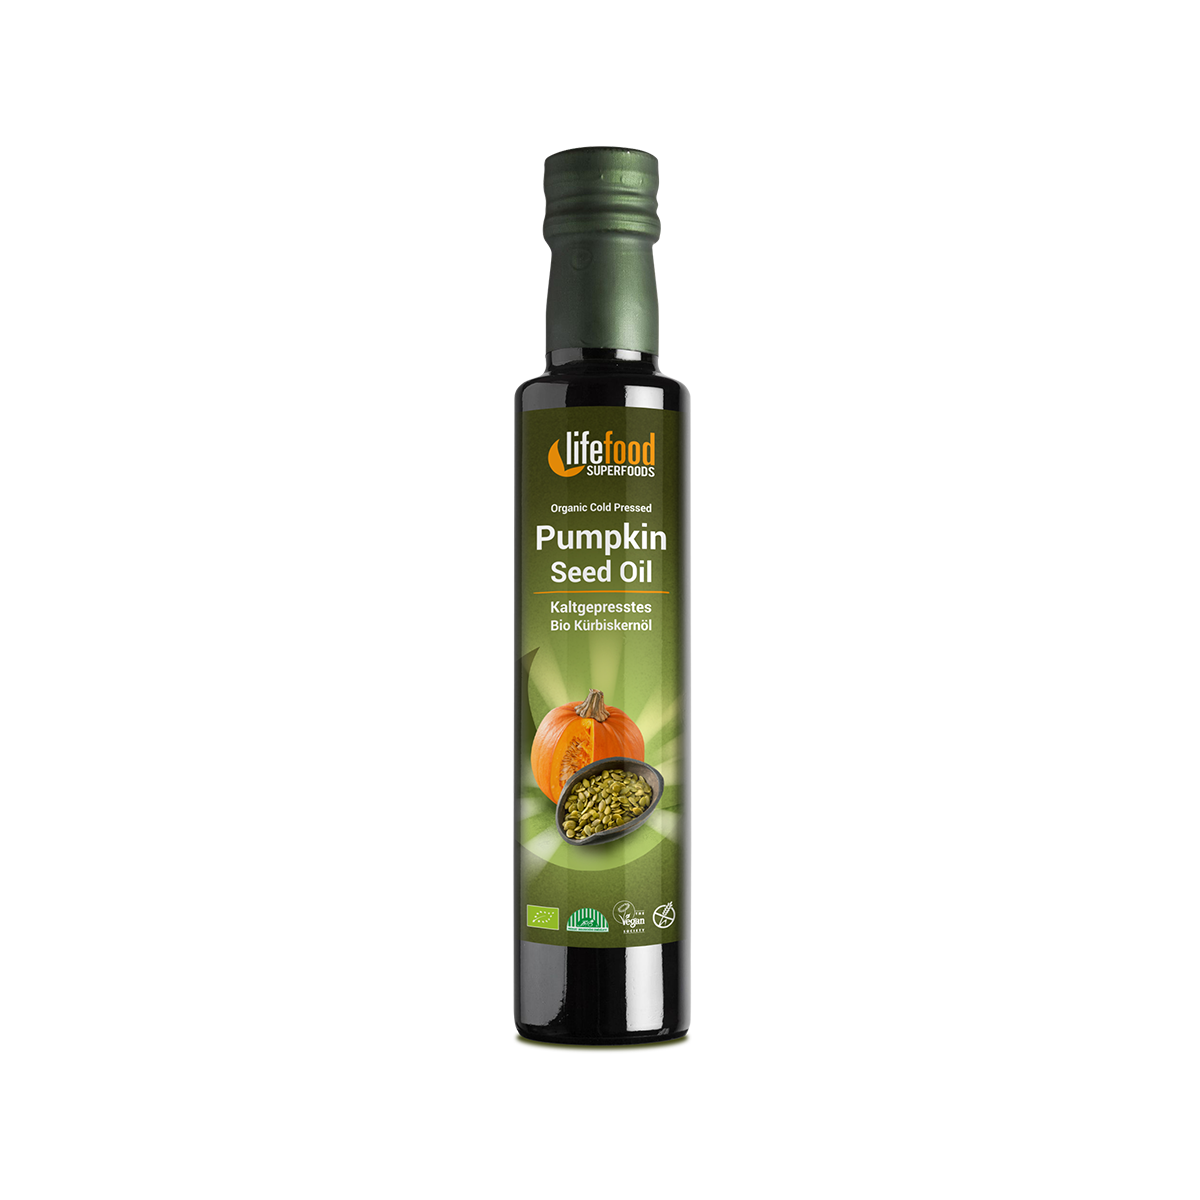 Lifefood Cold pressed Pumpkin Oil